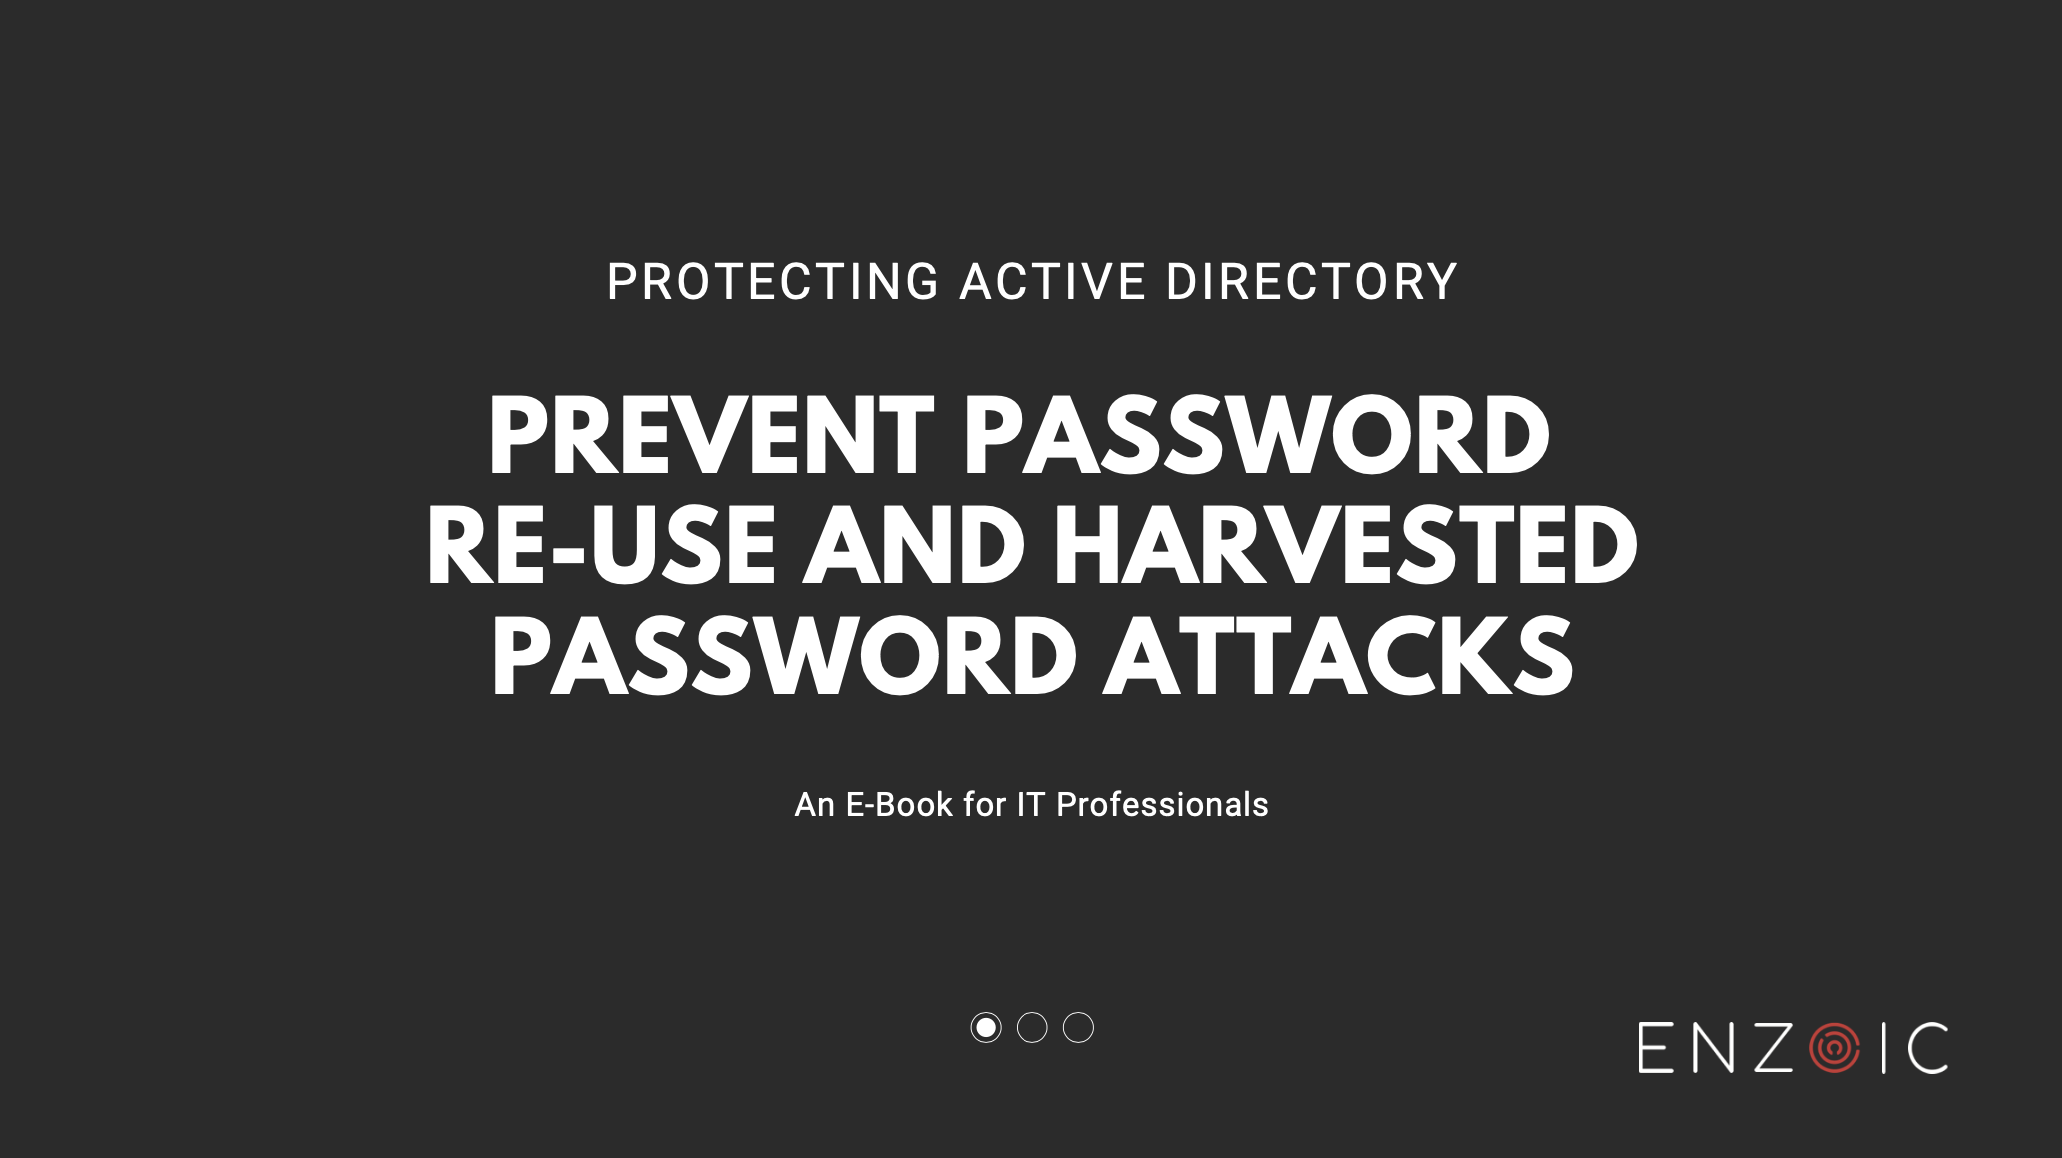 Protecting Active Directory Cover